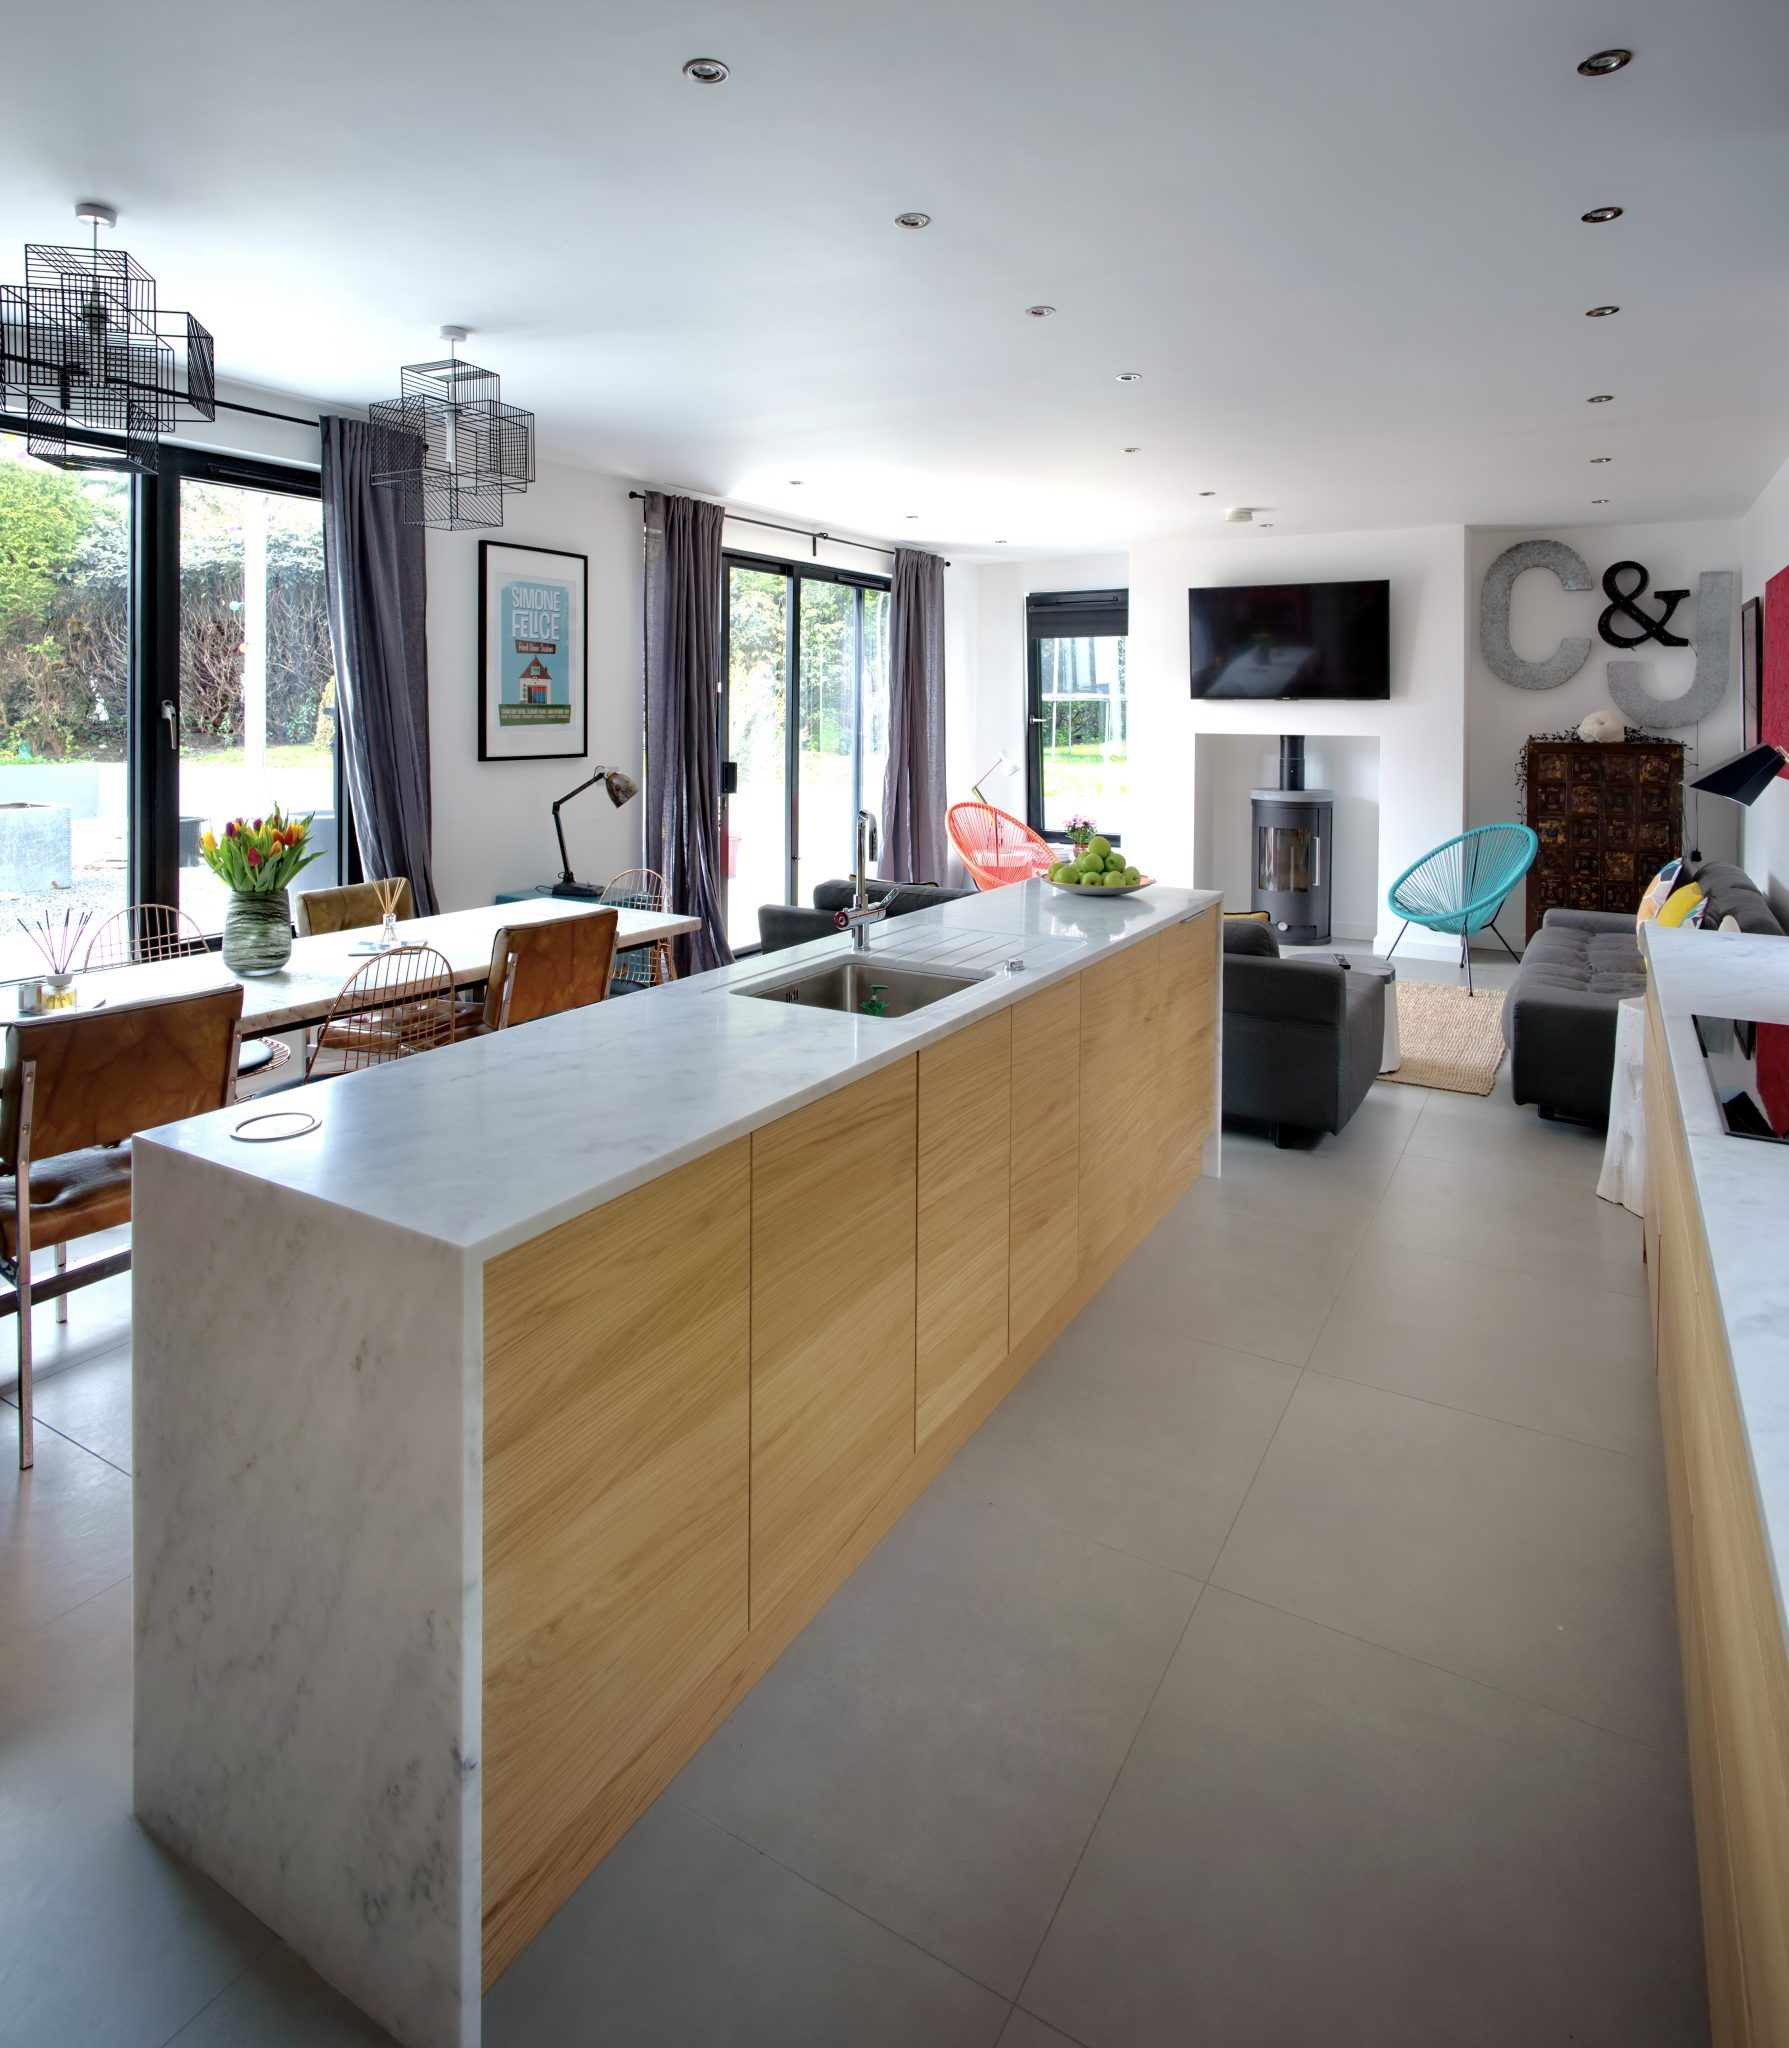 designer german kitchens family friendly adornas kitchens amp interiors bangor 3220